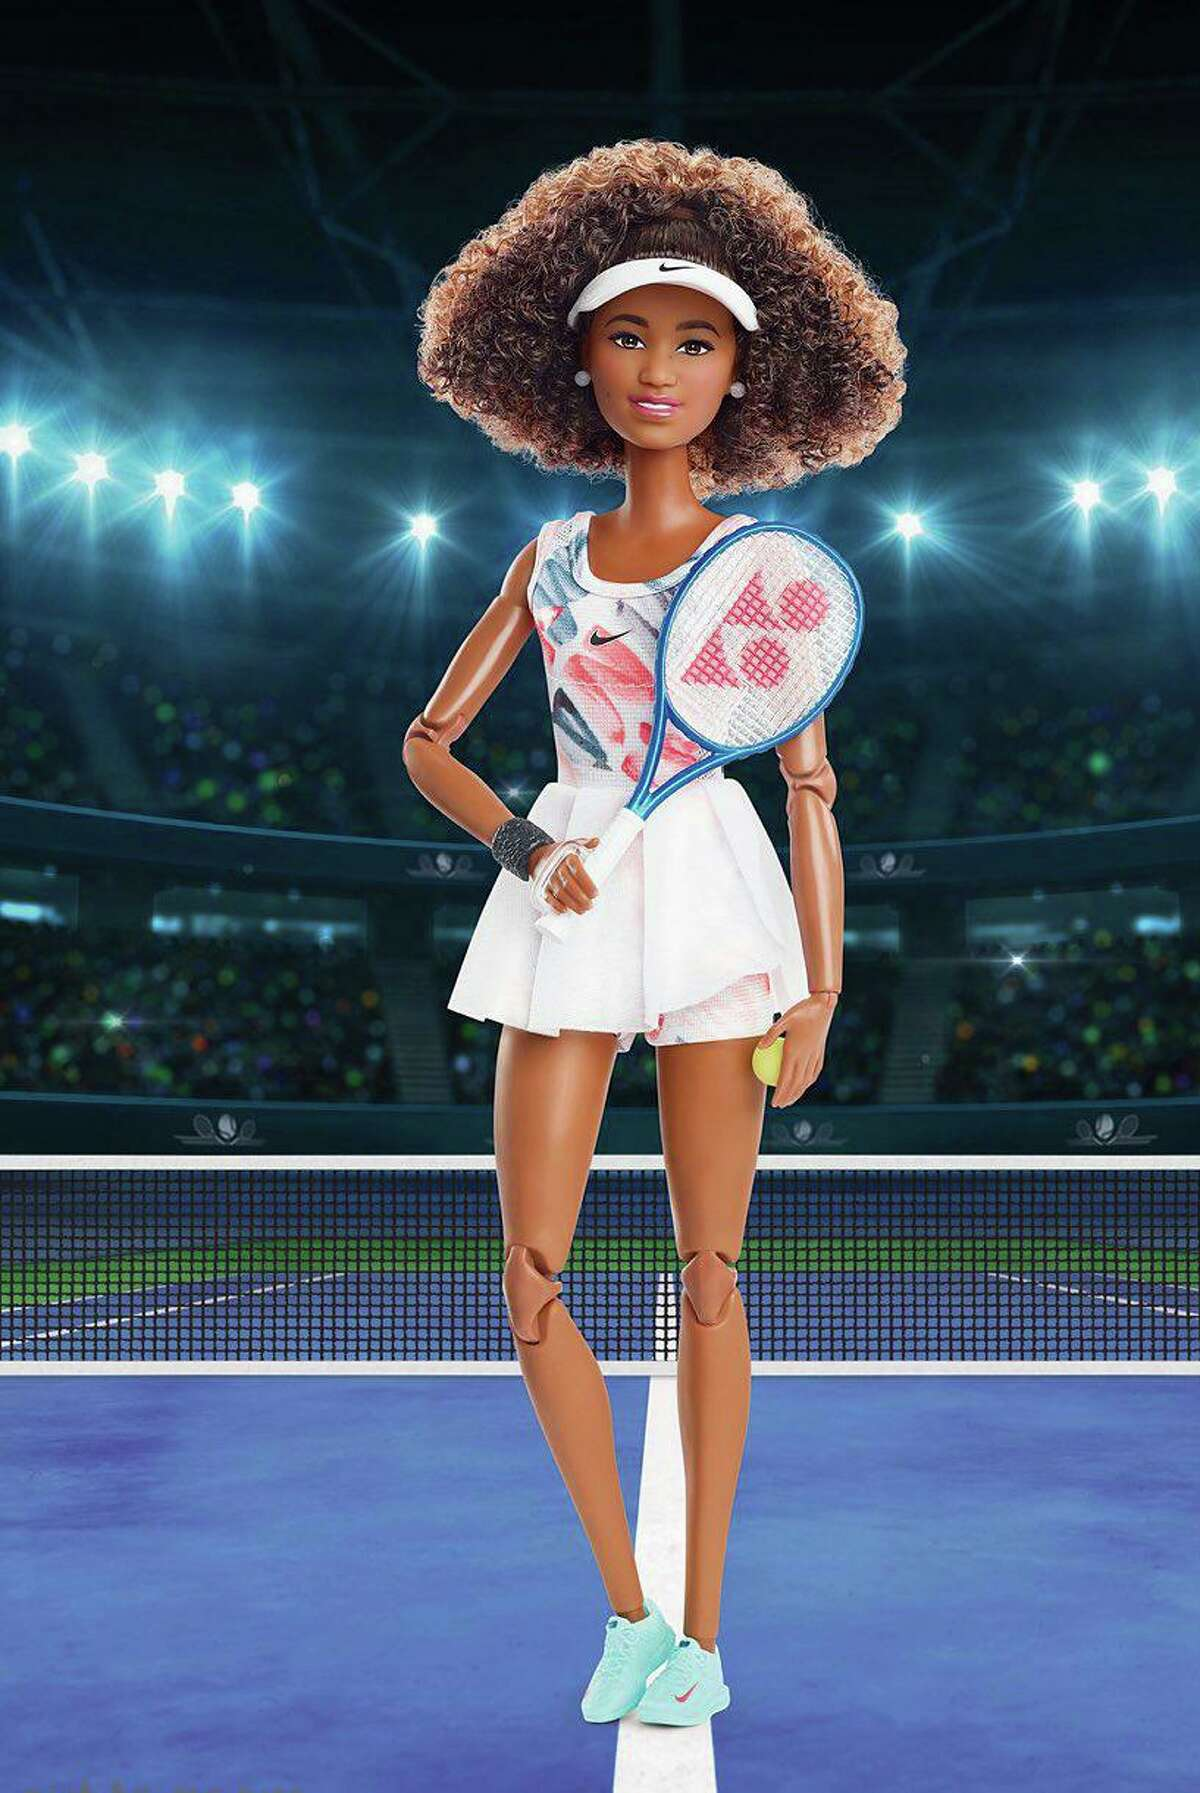 Naomi Osaka has introduced the Barbie Role Model Naomi Osaka doll in hopes every child is reminded that they can be and do anything. The doll was designed by Filipino designer Carlyle Nuera.